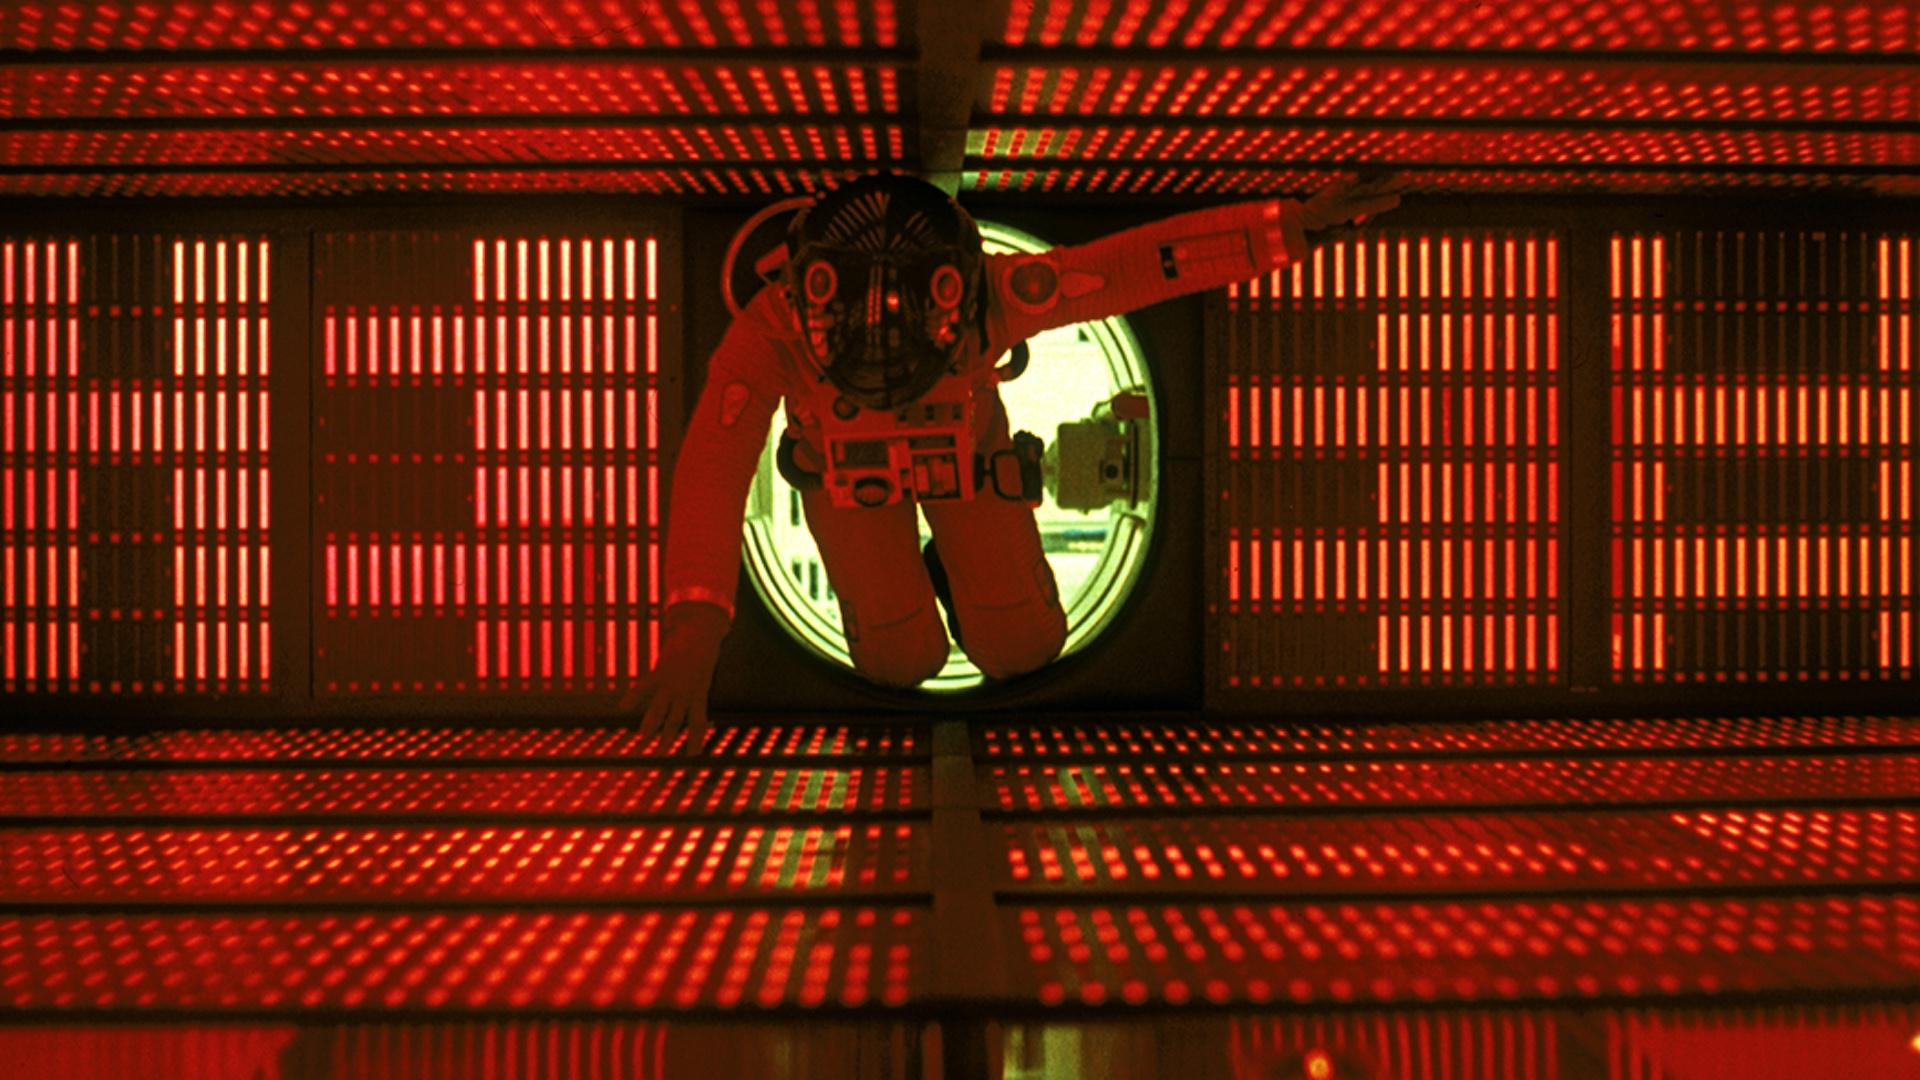 Stanley Kubrick S 2001 A Space Odyssey To Be Shown In 8k For The